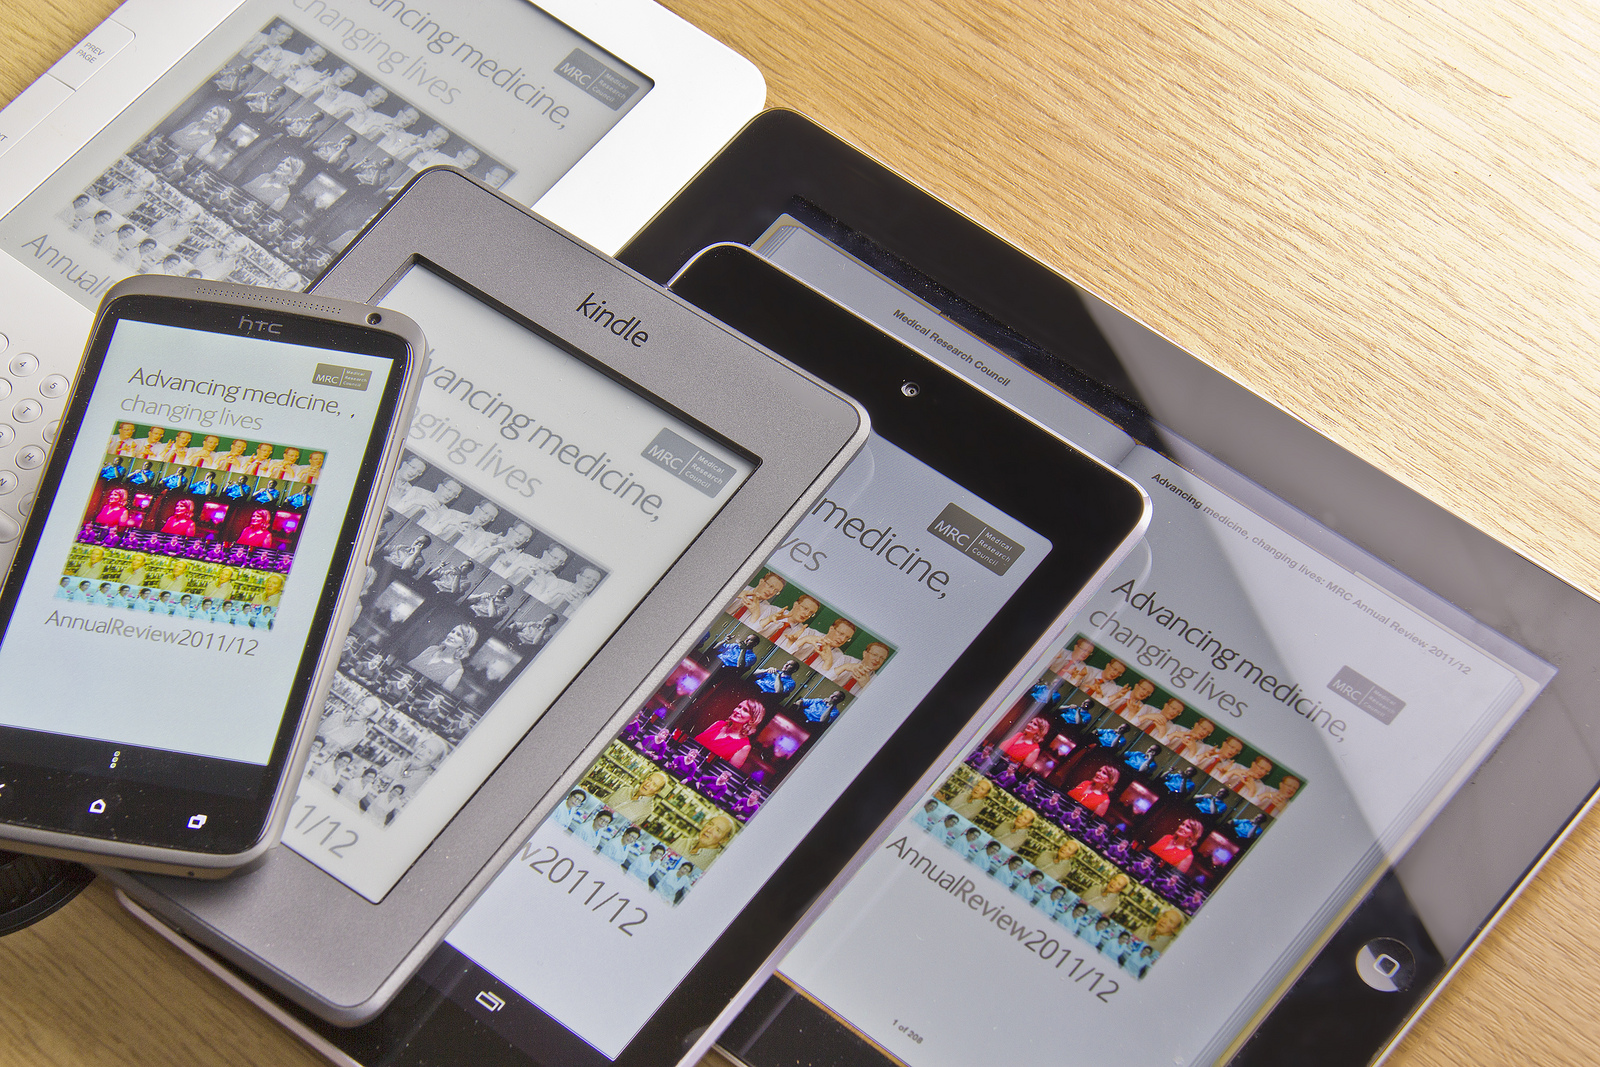 The ebook on multiple devices